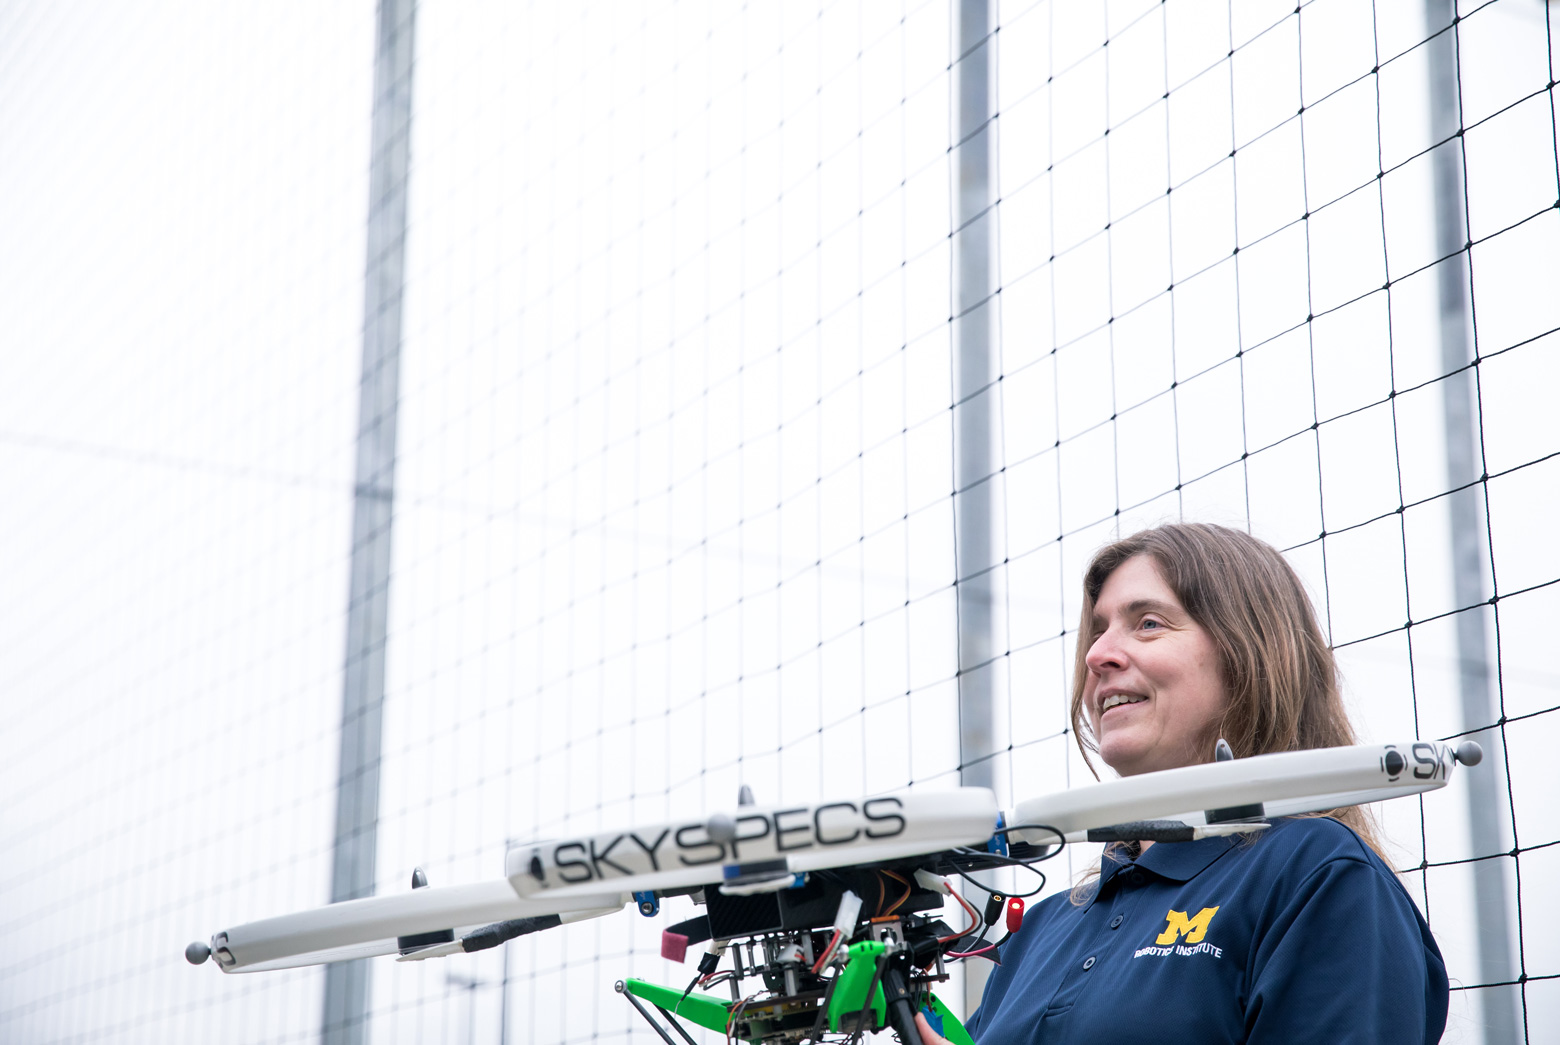 Atkins shows off one of her quadcopters to reporters at the M-Air media day on March 28, 2018.